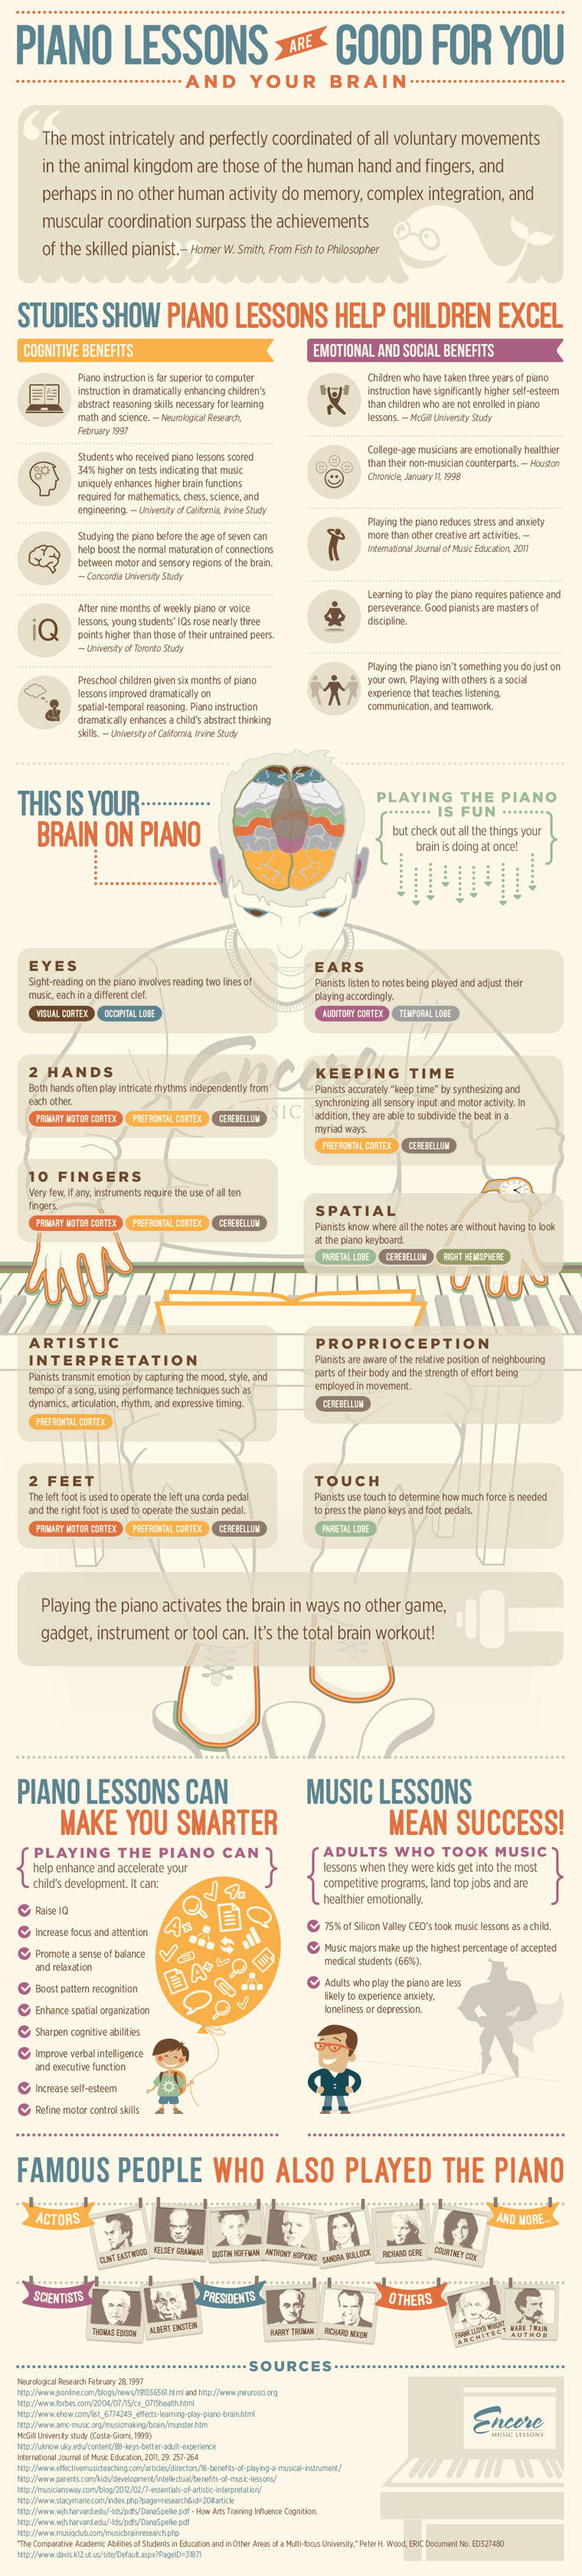 benefits of playing piano for the brain